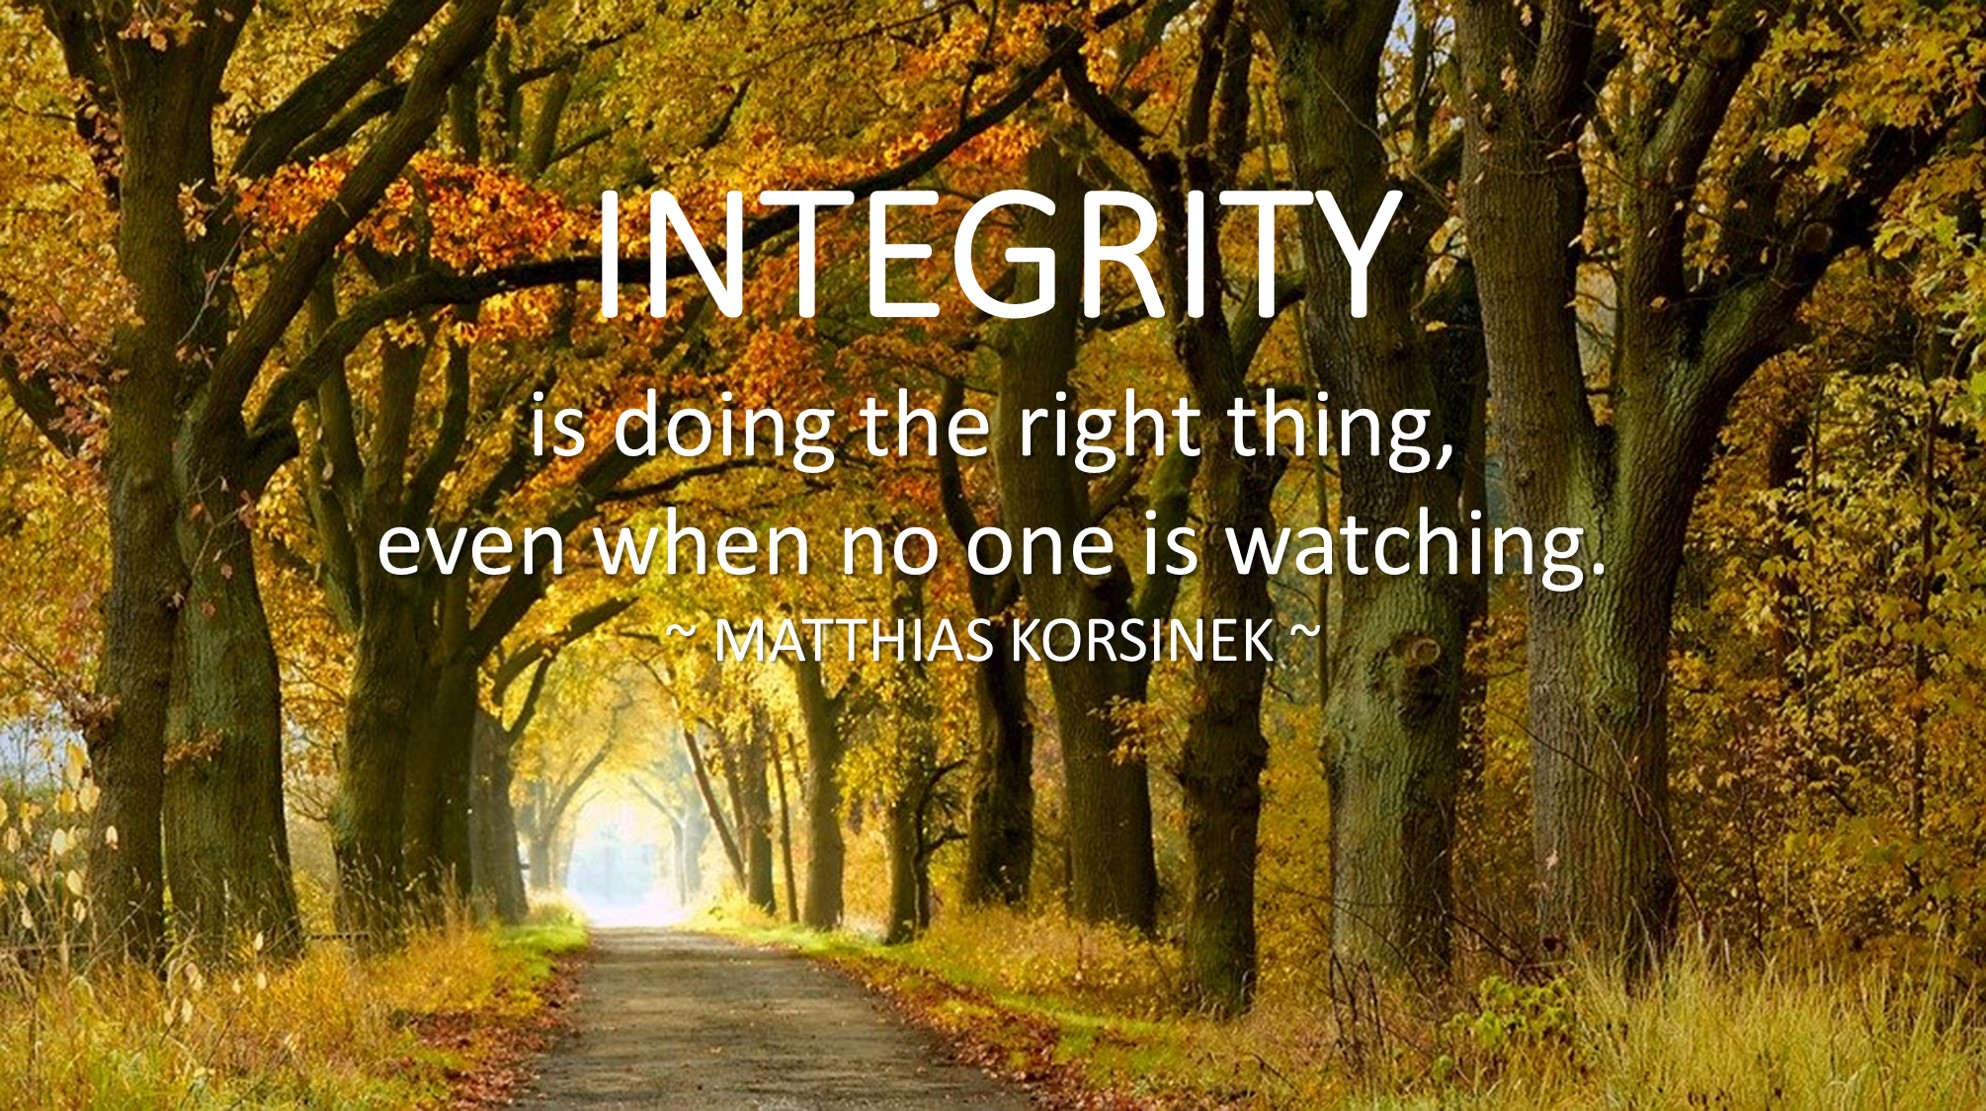 INTEGRITY is doing the right thing even no one is watching